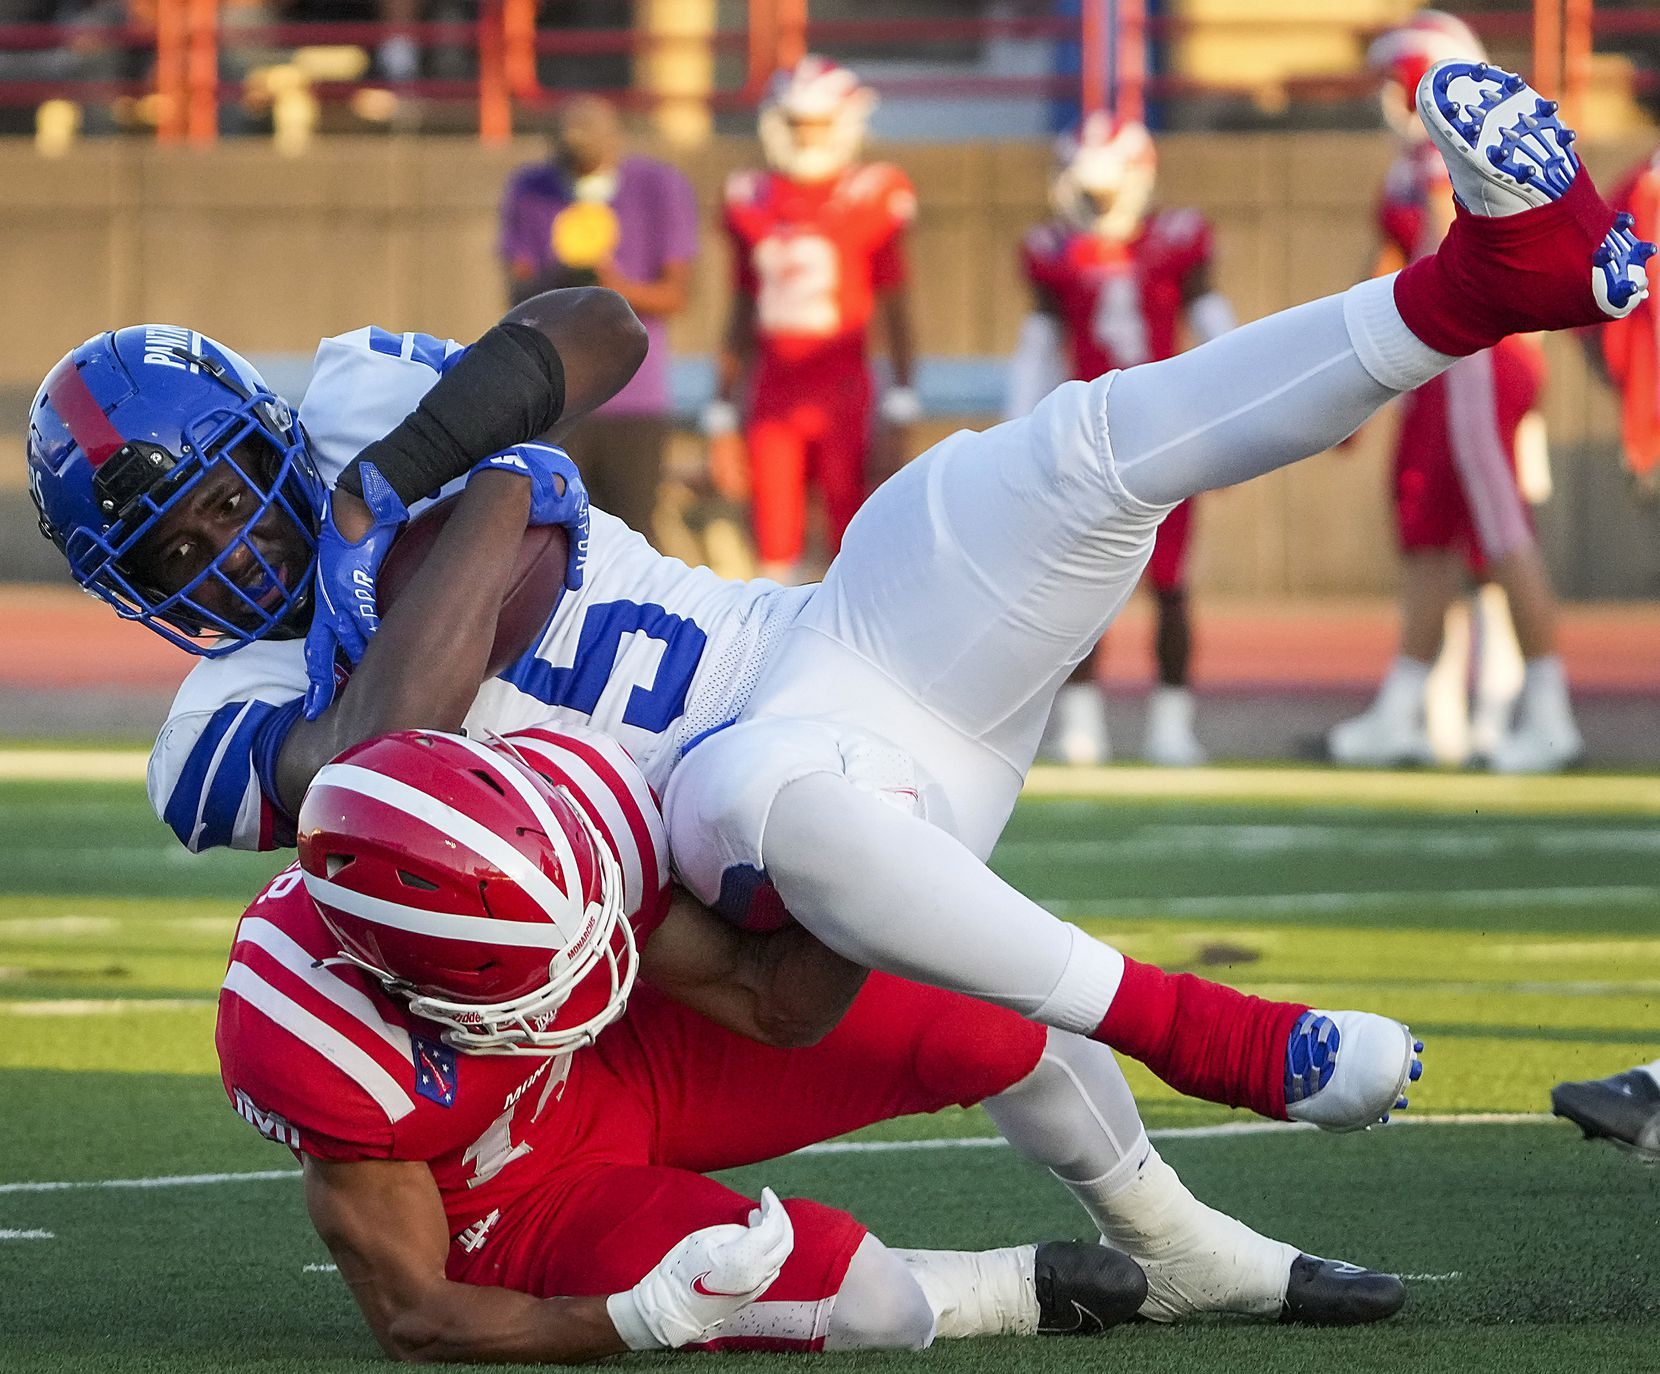 Duncanville running back Malachi Medlock (5) is knocked off his feet by Mater Dei defensive back Joshua Hunter (14) during the first half of a high school football game on Friday, Aug. 27, 2021, in Duncanville. (Smiley N. Pool/The Dallas Morning News)